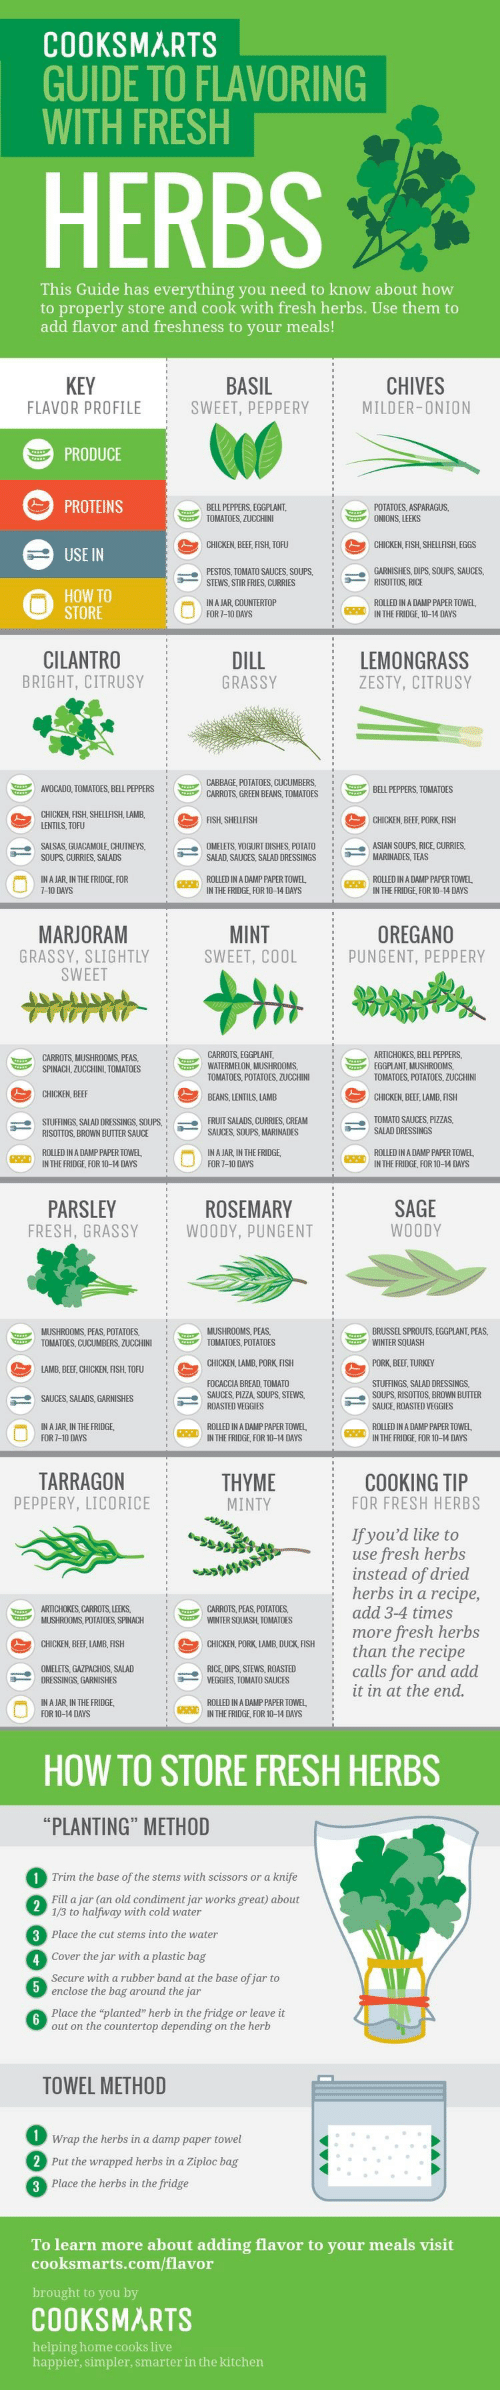 "Asian, Beef, and Fresh: COOKSMARTS  GUIDE TO FLAVORING  WITH FRESH  HERBS  This Guide has everything you need to know about how  to properly store and cook with fresh herbs. Use them to  add flavor and freshness to your meals!  BASIL  SWEET, PEPPERY  KEY  CHIVES  FLAVOR PROFILE  MILDER-ONION  PRODUCE  PROTEINS  POTATOES, ASPARAGUS.  ONIONS, LEEKS  BELL PEPPERS, EGGPLANT  TOMATOES, ZUCCHINI  CHICKEN, BEEF, FISH, TOFU  CHICKEN, FISH, SHELLFISH, EGGS  USE IN  GARNISHES, DIPS, SOUPS, SAUCES,  RISOTTOS, RICE  PESTOS, TOMATO SAUCES, SOUPS,  STEWS STIR FRIES, CURRIES  HOW TO  STORE  IN A JAR, COUNTERTOP  FOR 7-10 DAYS  ROLLED IN A DAMP PAPER TOWEL  IN THE FRIDGE, 10-14 DAYS  CILANTRO  BRIGHT, CITRUSY  DILL  LEMONGRASS  GRASSY  ZESTY, CITRUSY  CABBAGE, POTATOES, CUCUMBERS  CARROTS, GREEN BEANS, TOMATOES  AVOCADO, TOMATOES, BELL PEPPERS  BELL PEPPERS, TOMATOES  CHICKEN, FISH, SHELLFISH, LAMB  LENTILS, TOFU  FISH, SHELLFISH  CHICKEN, BEEF, PORK, FISH  OMELETS, YOGURT DISHES, POTATO  ASIAN SOUPS, RICE, CURRIES  MARINADES, TEAS  SALSAS, GUACAMOLE, CHUTNEYS,  SOUPS, CURRIES, SALADS  SALAD SAUCES, SALAD DRESSINGS  ROLLED IN A DAMP PAPER TOWEL  IN THE FRIDGE, FOR 10-14 DAYS  ROLLED IN A DAMP PAPER TOWEL  IN THE FRIDGE, FOR 10-14 DAYS  IN A JAR, IN THE FRIDGE, FOR  7-10 DAYS  MINT  SWEET, COOL  OREGANO  PUNGENT, PEPPERY  MARJORAM  GRASSY, SLIGHTLY  SWEET  CARROTS, EGGPLANT  WATERMELON, MUSHROOMS  TOMATOES, POTATOES, ZUCCHINI  ARTICHOKES, BELL PEPPERS,  EGGPLANT, MUSHROOMS  TOMATOES, POTATOES, ZUCCHINI  CARROTS, MUSHROOMS, PEAS  SPINACH, ZUCCHINI, TOMATOES  CHICKEN, BEEF  BEANS LENTILS, LAMB  CHICKEN, BEEF, LAMB, FISH  TOMATO SAUCES, PIZZAS  SALAD DRESSINGS  FRUIT SALADS, CURRIES, CREAM  SAUCES, SOUPS, MARINADES  STUFFINGS, SALAD DRESSINGS, SOUPS,  RISOTTOS, BROWN BUTTER SAUCE  ROLLED IN A DAMP PAPER TOWEL  IN THE FRIDGE, FOR 10-14 DAYS  IN A JAR, IN THE FRIDGE  FOR 7-10 DAYS  ROLLED IN A DAMP PAPER TOWEL  IN THE FRIDGE FOR 10-14 DAYS  PARSLEY  SAGE  ROSEMARY  WOODY  FRESH, GRASSY  WOODY, PUNGENT  MUSHROOMS, PEAS  TOMATOES, POTATOES  MUSHROOMS, PEAS, POTATOES  TOMATOES, CUCUMBERS, ZUCCHINI  BRUSSEL SPROUTS, EGGPLANT, PEAS,  WINTER SQUASH  CHICKEN, LAMB, PORK, FISH  PORK, BEEF, TURKEY  LAMB, BEEF, CHICKEN, FISH, TOFU  FOCACCIA BREAD, TOMATO  SAUCES, PIZZA, SOUPS, STEWS  ROASTED VEGGIES  STUFFINGS, SALAD DRESSINGS  SOUPS, RISOTTOS, BROWN BUTTER  SAUCES, SALADS, GARNISHES  SAUCE, ROASTED VEGGIES  IN A JAR, IN THE FRIDGE  ROLLED IN A DAMP PAPER TOWEL  IN THE FRIDGE, FOR 10-14 DAYS  ROLLED IN A DAMP PAPER TOWEL  FOR 7-10 DAYS  IN THE FRIDGE, FOR 10-14 DAYS  TARRAGON  THYME  COOKING TIP  FOR FRESH HERBS  PEPPERY, LICORICE  MINTY  If you'd like to  use fresh herbs  instead of dried  herbs in a recipe,  add 3-4 times  CARROTS, PEAS POTATOES  ARTICHOKES, CARROTS, LEEKS  MUSHROOMS, POTATOES, SPINACH  WINTER SQUASH, TOMATOES  more fresh herbs  than the recipe  calls for and add  it in at the end.  CHICKEN, BEEF, LAMB, FISH  CHICKEN, PORK, LAMB, DUCK, FISH  OMELETS, GAZPACHOS, SALAD  DRESSINGS, GARNISHES  RICE, DIPS, STEWS, ROASTED  VEGGIES, TOMATO SAUCES  IN A JAR, IN THE FRIDGE  ROLLED IN A DAMP PAPER TOWEL  IN THE FRIDGE, FOR 10-14 DAYS  FOR 10-14 DAYS  HOW TO STORE FRESH HERBS  ""PLANTING"" METHOD  1 Trim the base of the stems with scissors or a knife  Fill a jar (an old condiment jar works great) about  2  1/3 to halfway with cold water  3 Place the cut stems into the water  Cover the jar with a plastic bag  Secure with a rubber band at the base of jar to  5  enclose the bag around the jar  Place the ""planted"" herb in the fridge or leave it  out on the countertop depending on the herb  TOWEL METHOD  1  Wrap the herbs in a damp paper towel  2 Put the wrapped herbs in a Ziploc bag  3Place the herbs in the fridge  To learn more about adding flavor to your meals visit  cooksmarts.com/flavor  brought to you by  COOKSMARTS  helping home cooks live  happier, simpler, smarter in the kitchen  DOLE  D O"